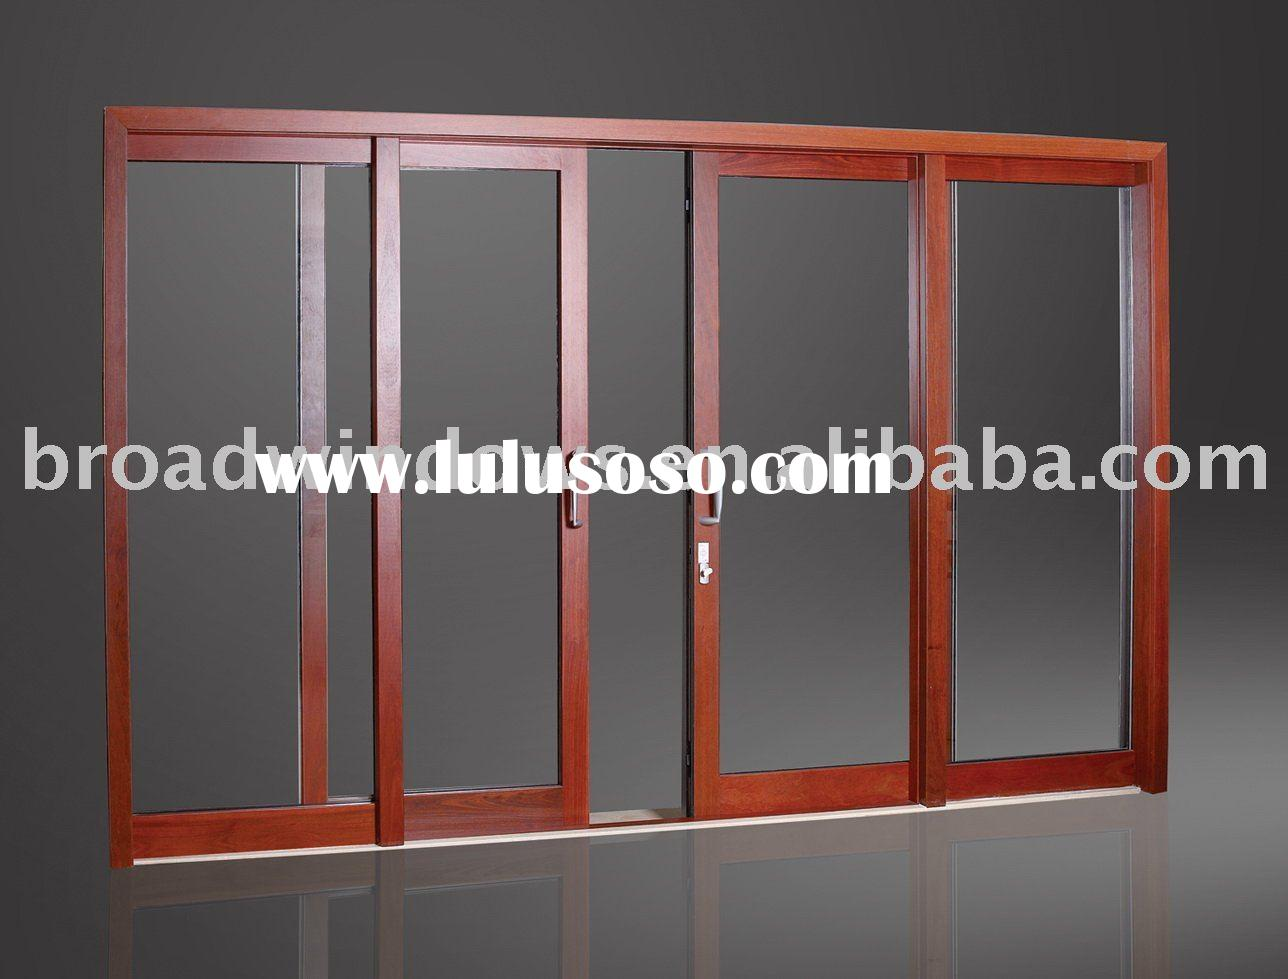 Thermal Break Wood Clad Aluminum Sliding Door and Aluminium Door(D130)